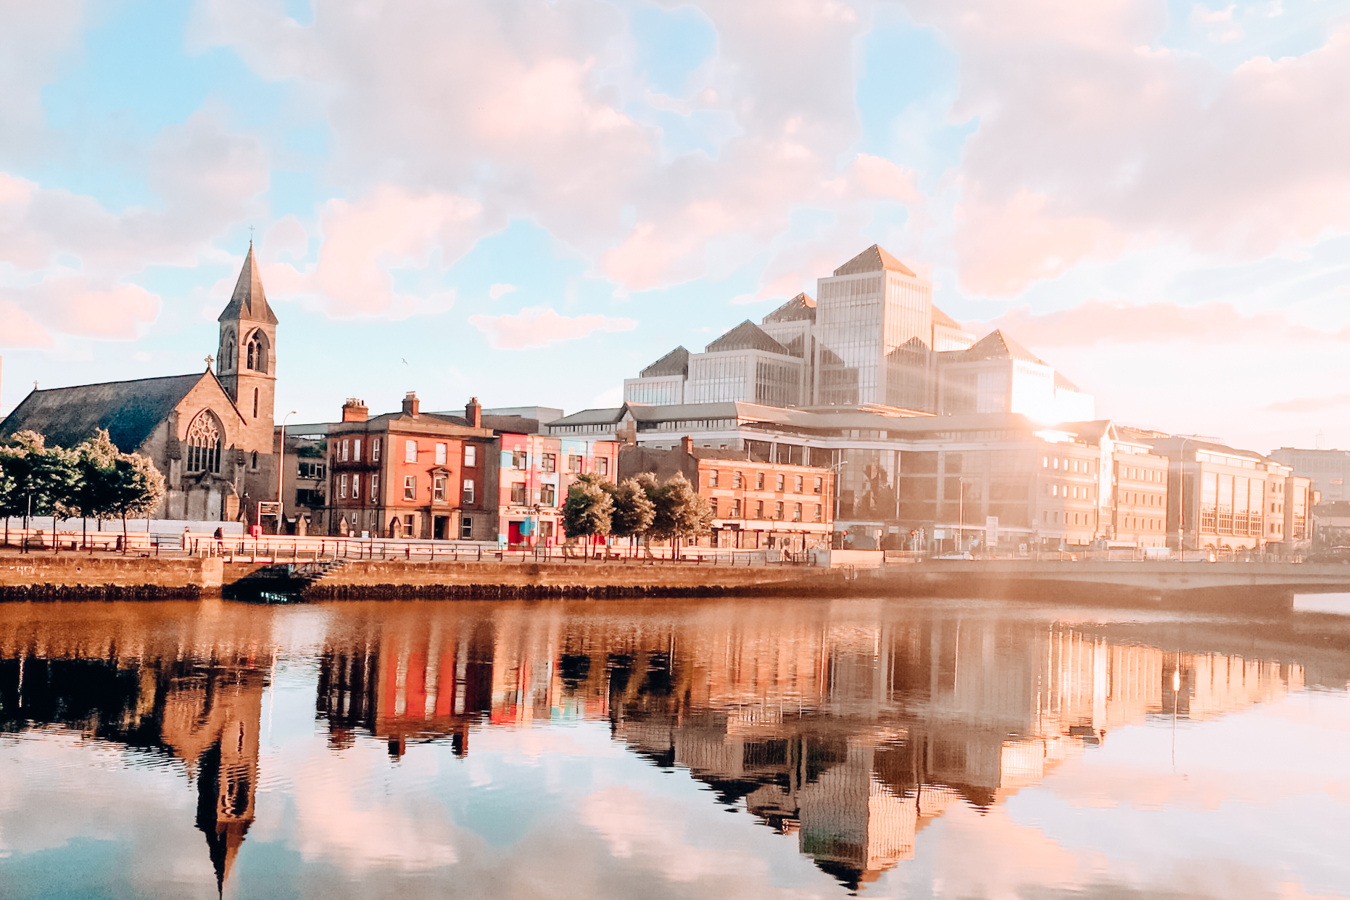 Water, buildings, and clouds in Dublin